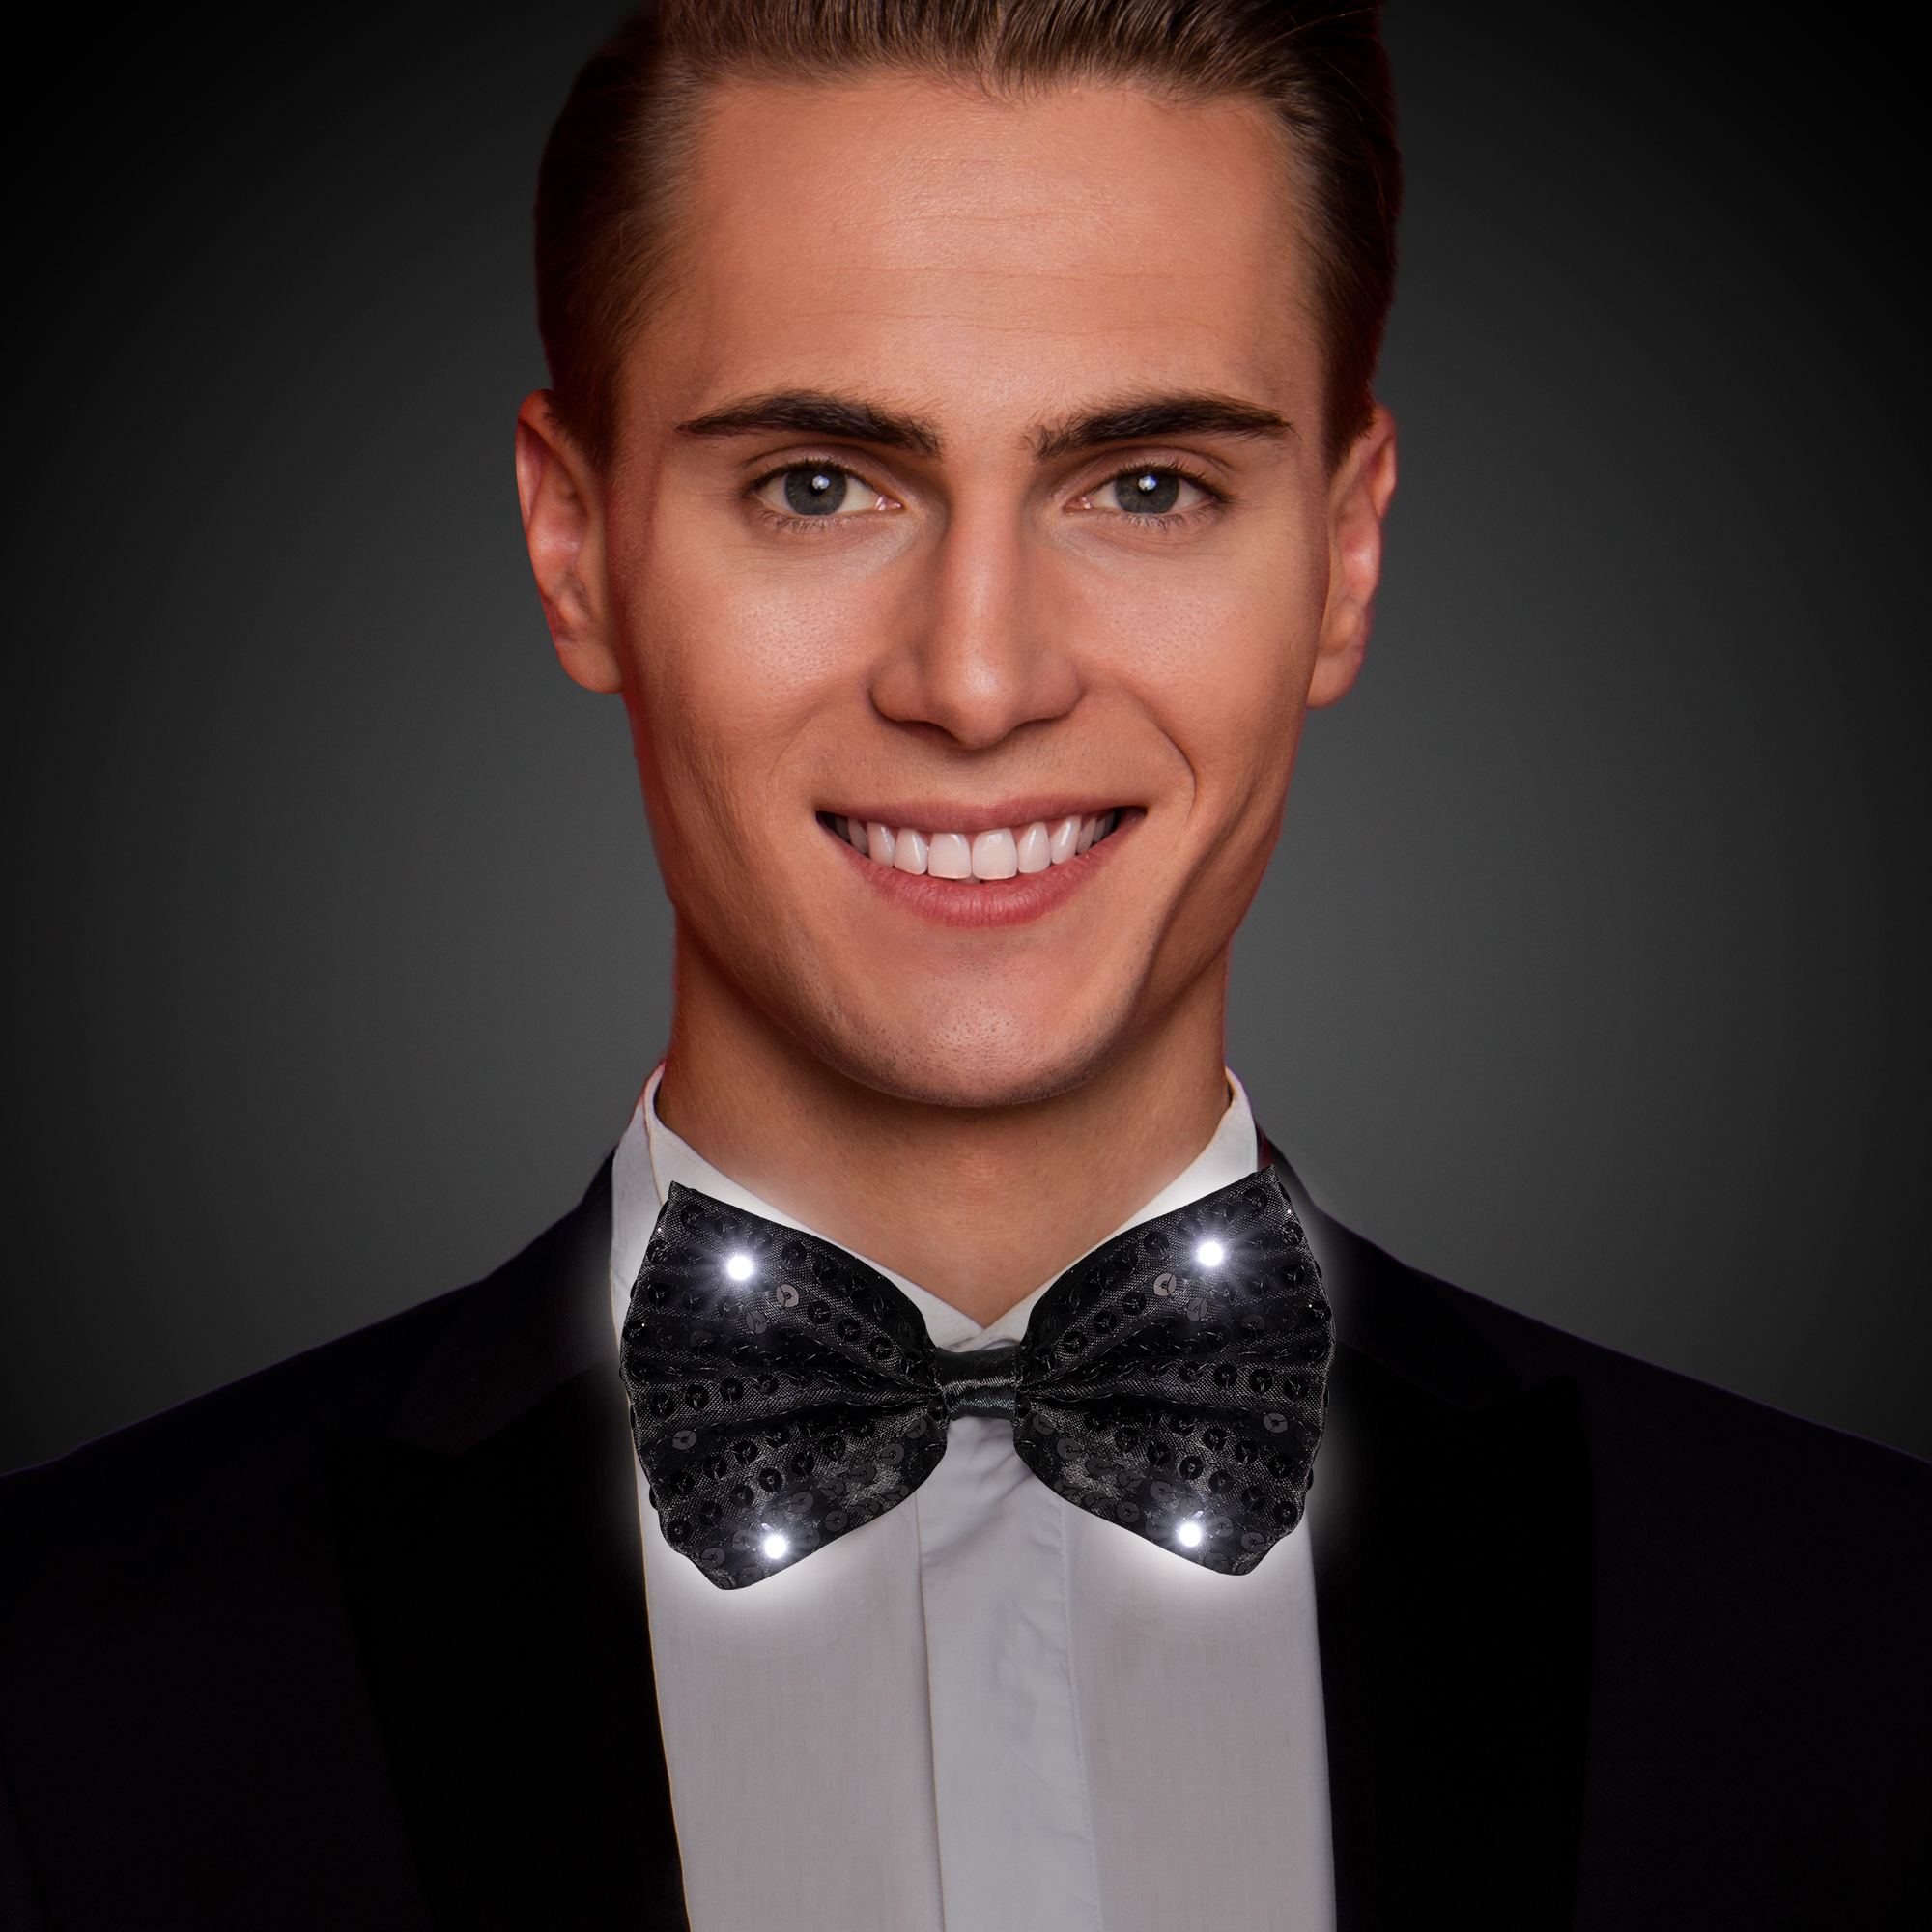 BLACK SEQUIN LU BOW TIE